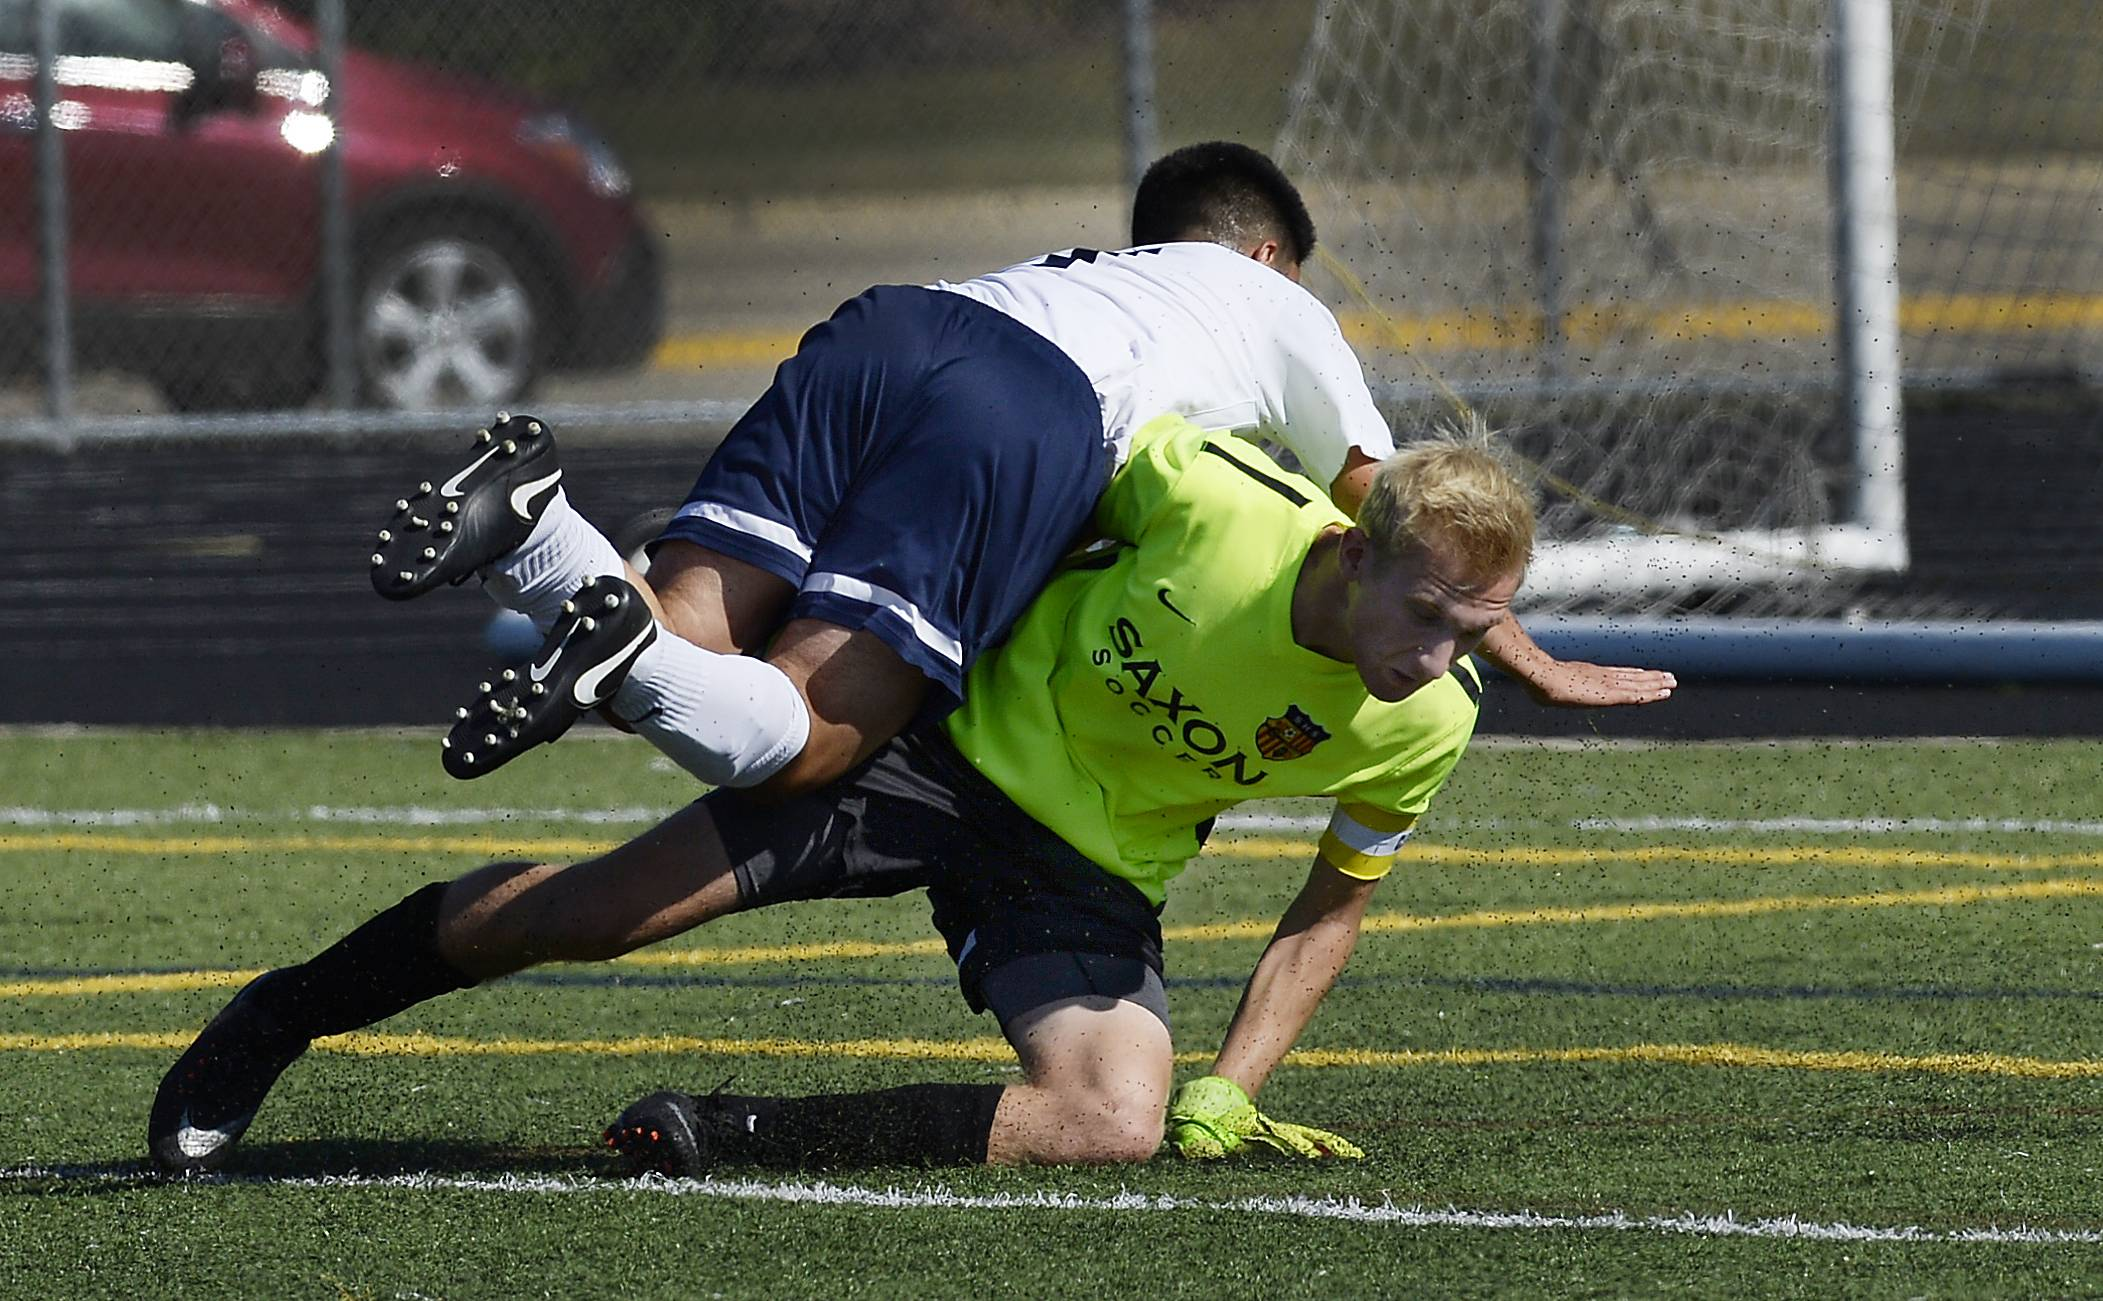 Conant's Eduardo Dorado and Schaumburg goalie Grant Behrens collide, which resulted in Behrens leaving the game at Conant on Saturday.